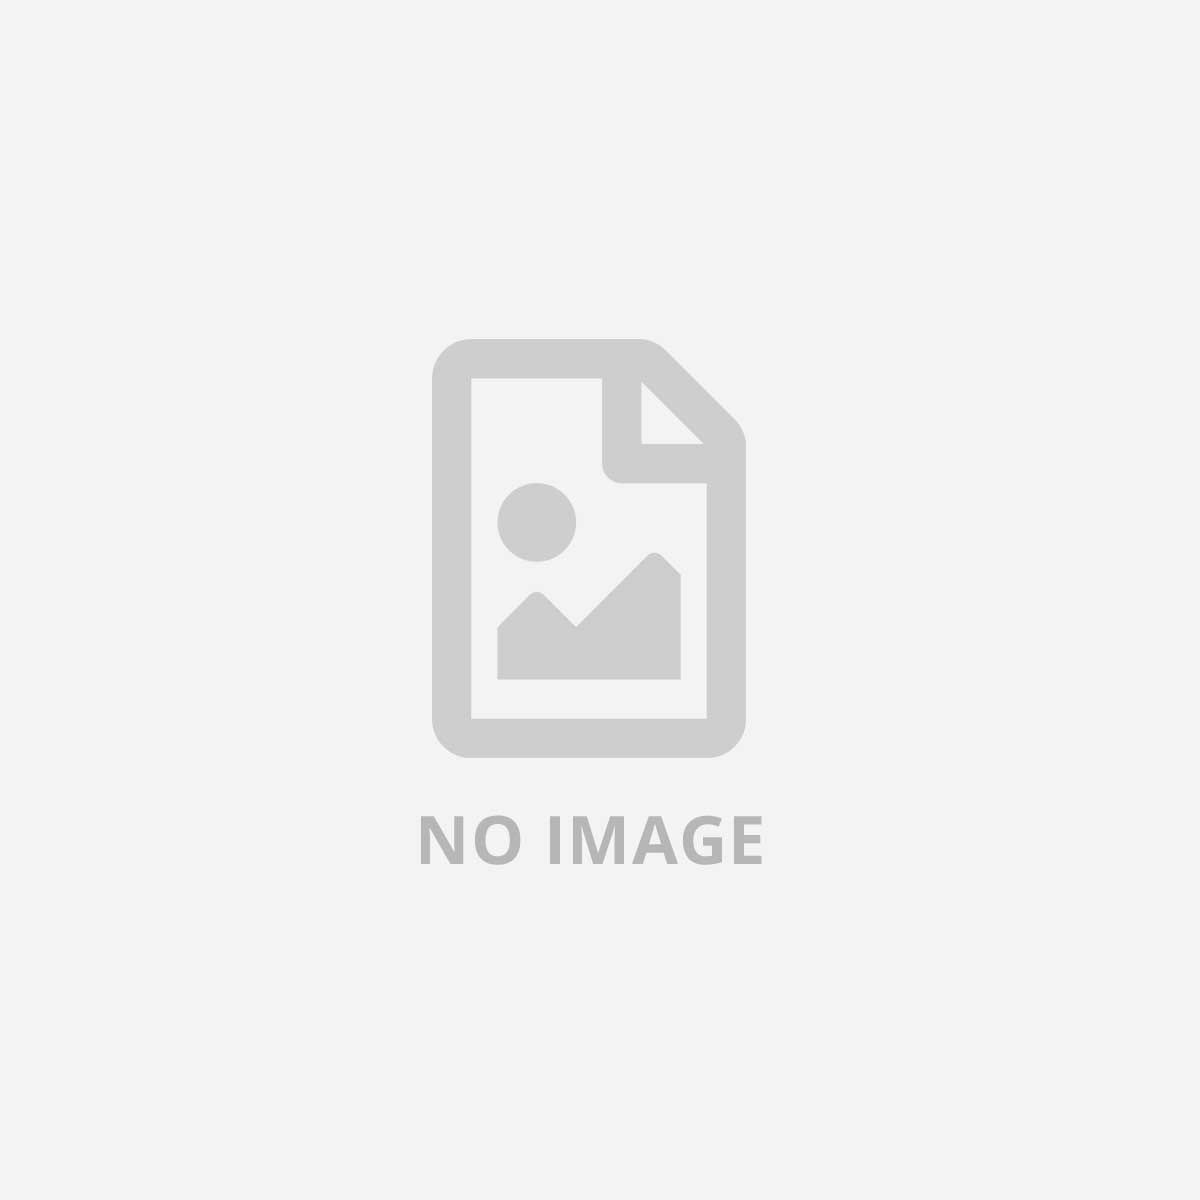 CONCEPTRONIC M.2 NVME SSD PCIE ADAPTER